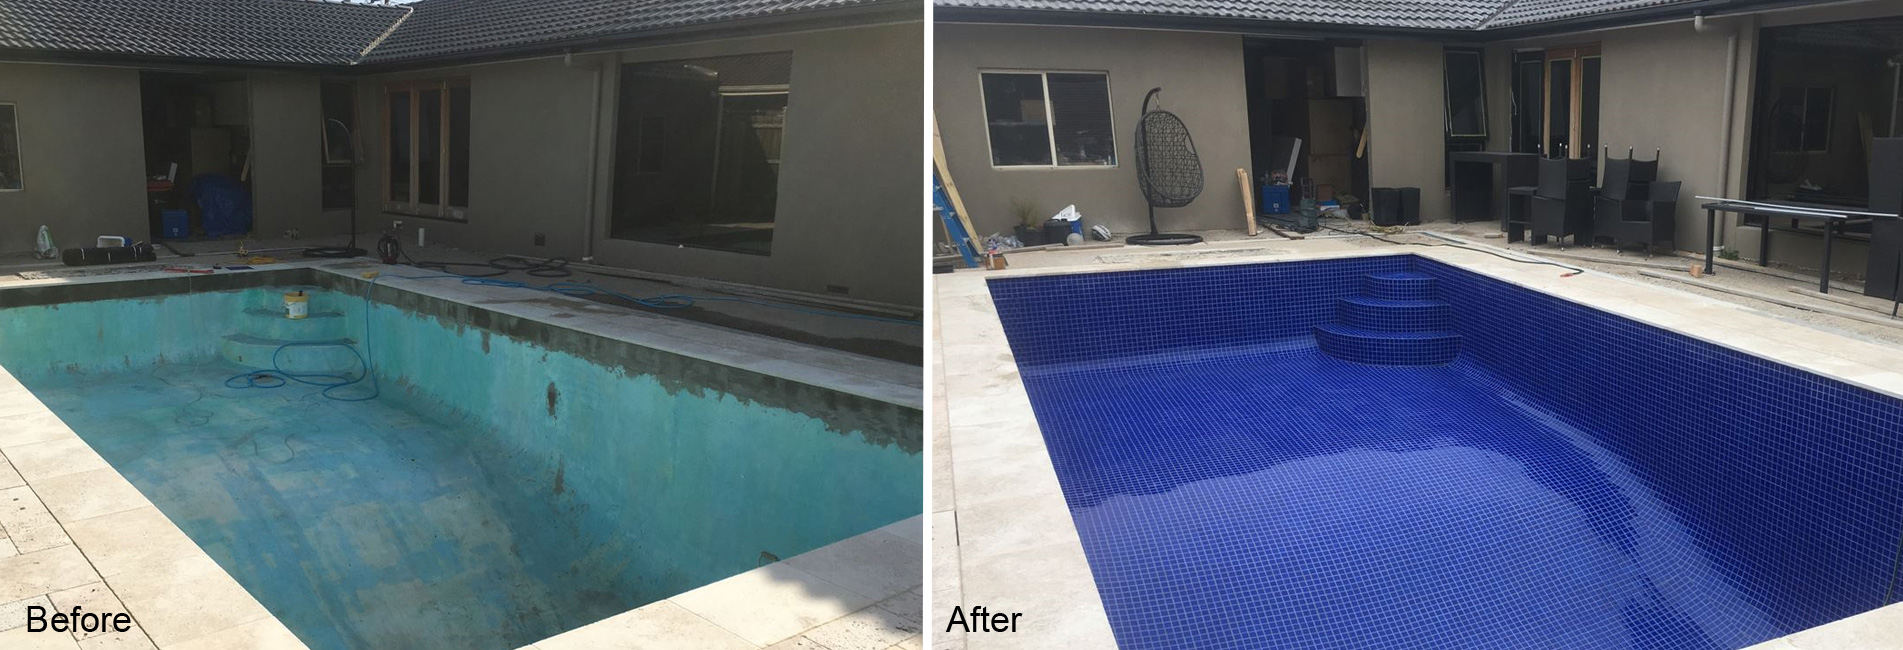 Fix Pool Filters Dandenong, Pool Paving Berwick, Pool Services Cranbourne